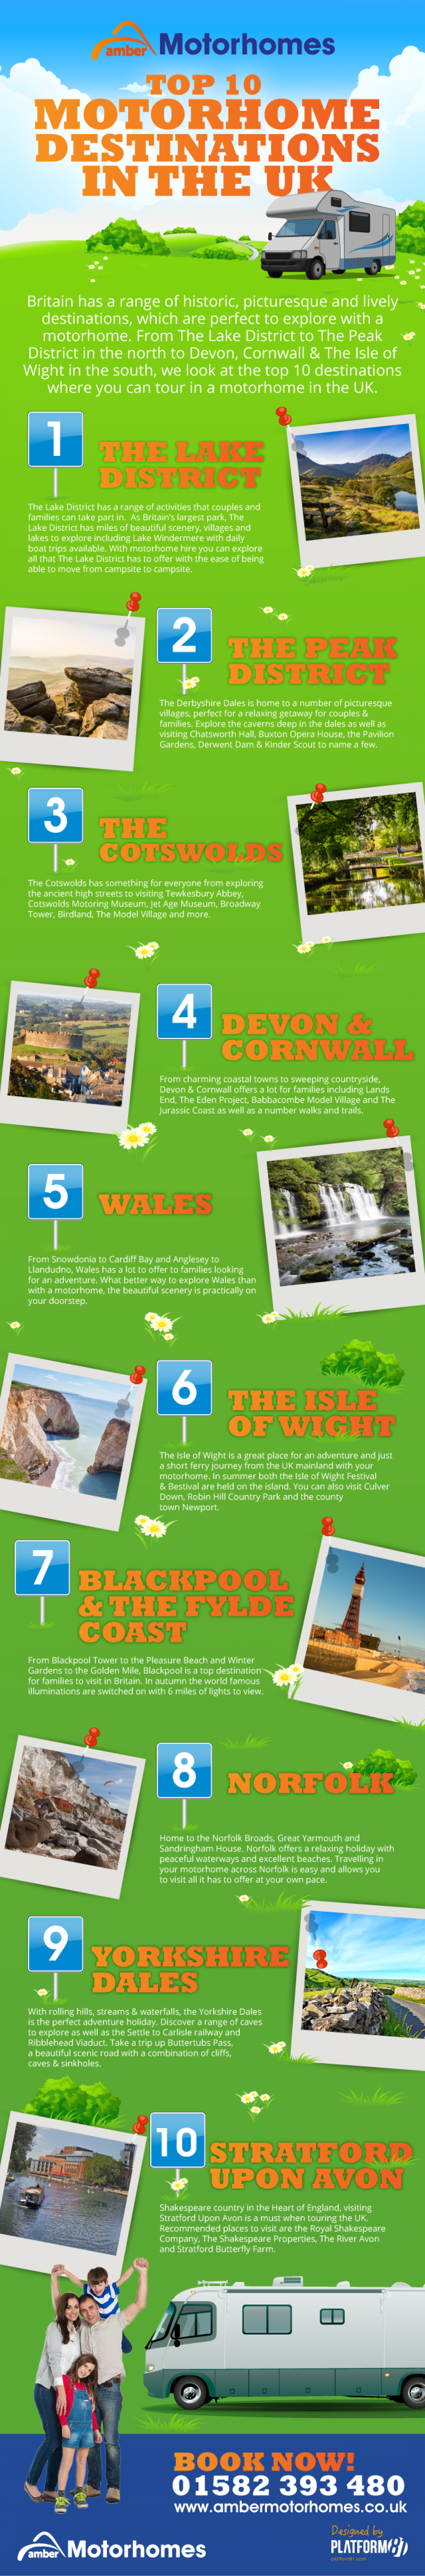 Top 10 Motorhome Destinations in the UK Infographic